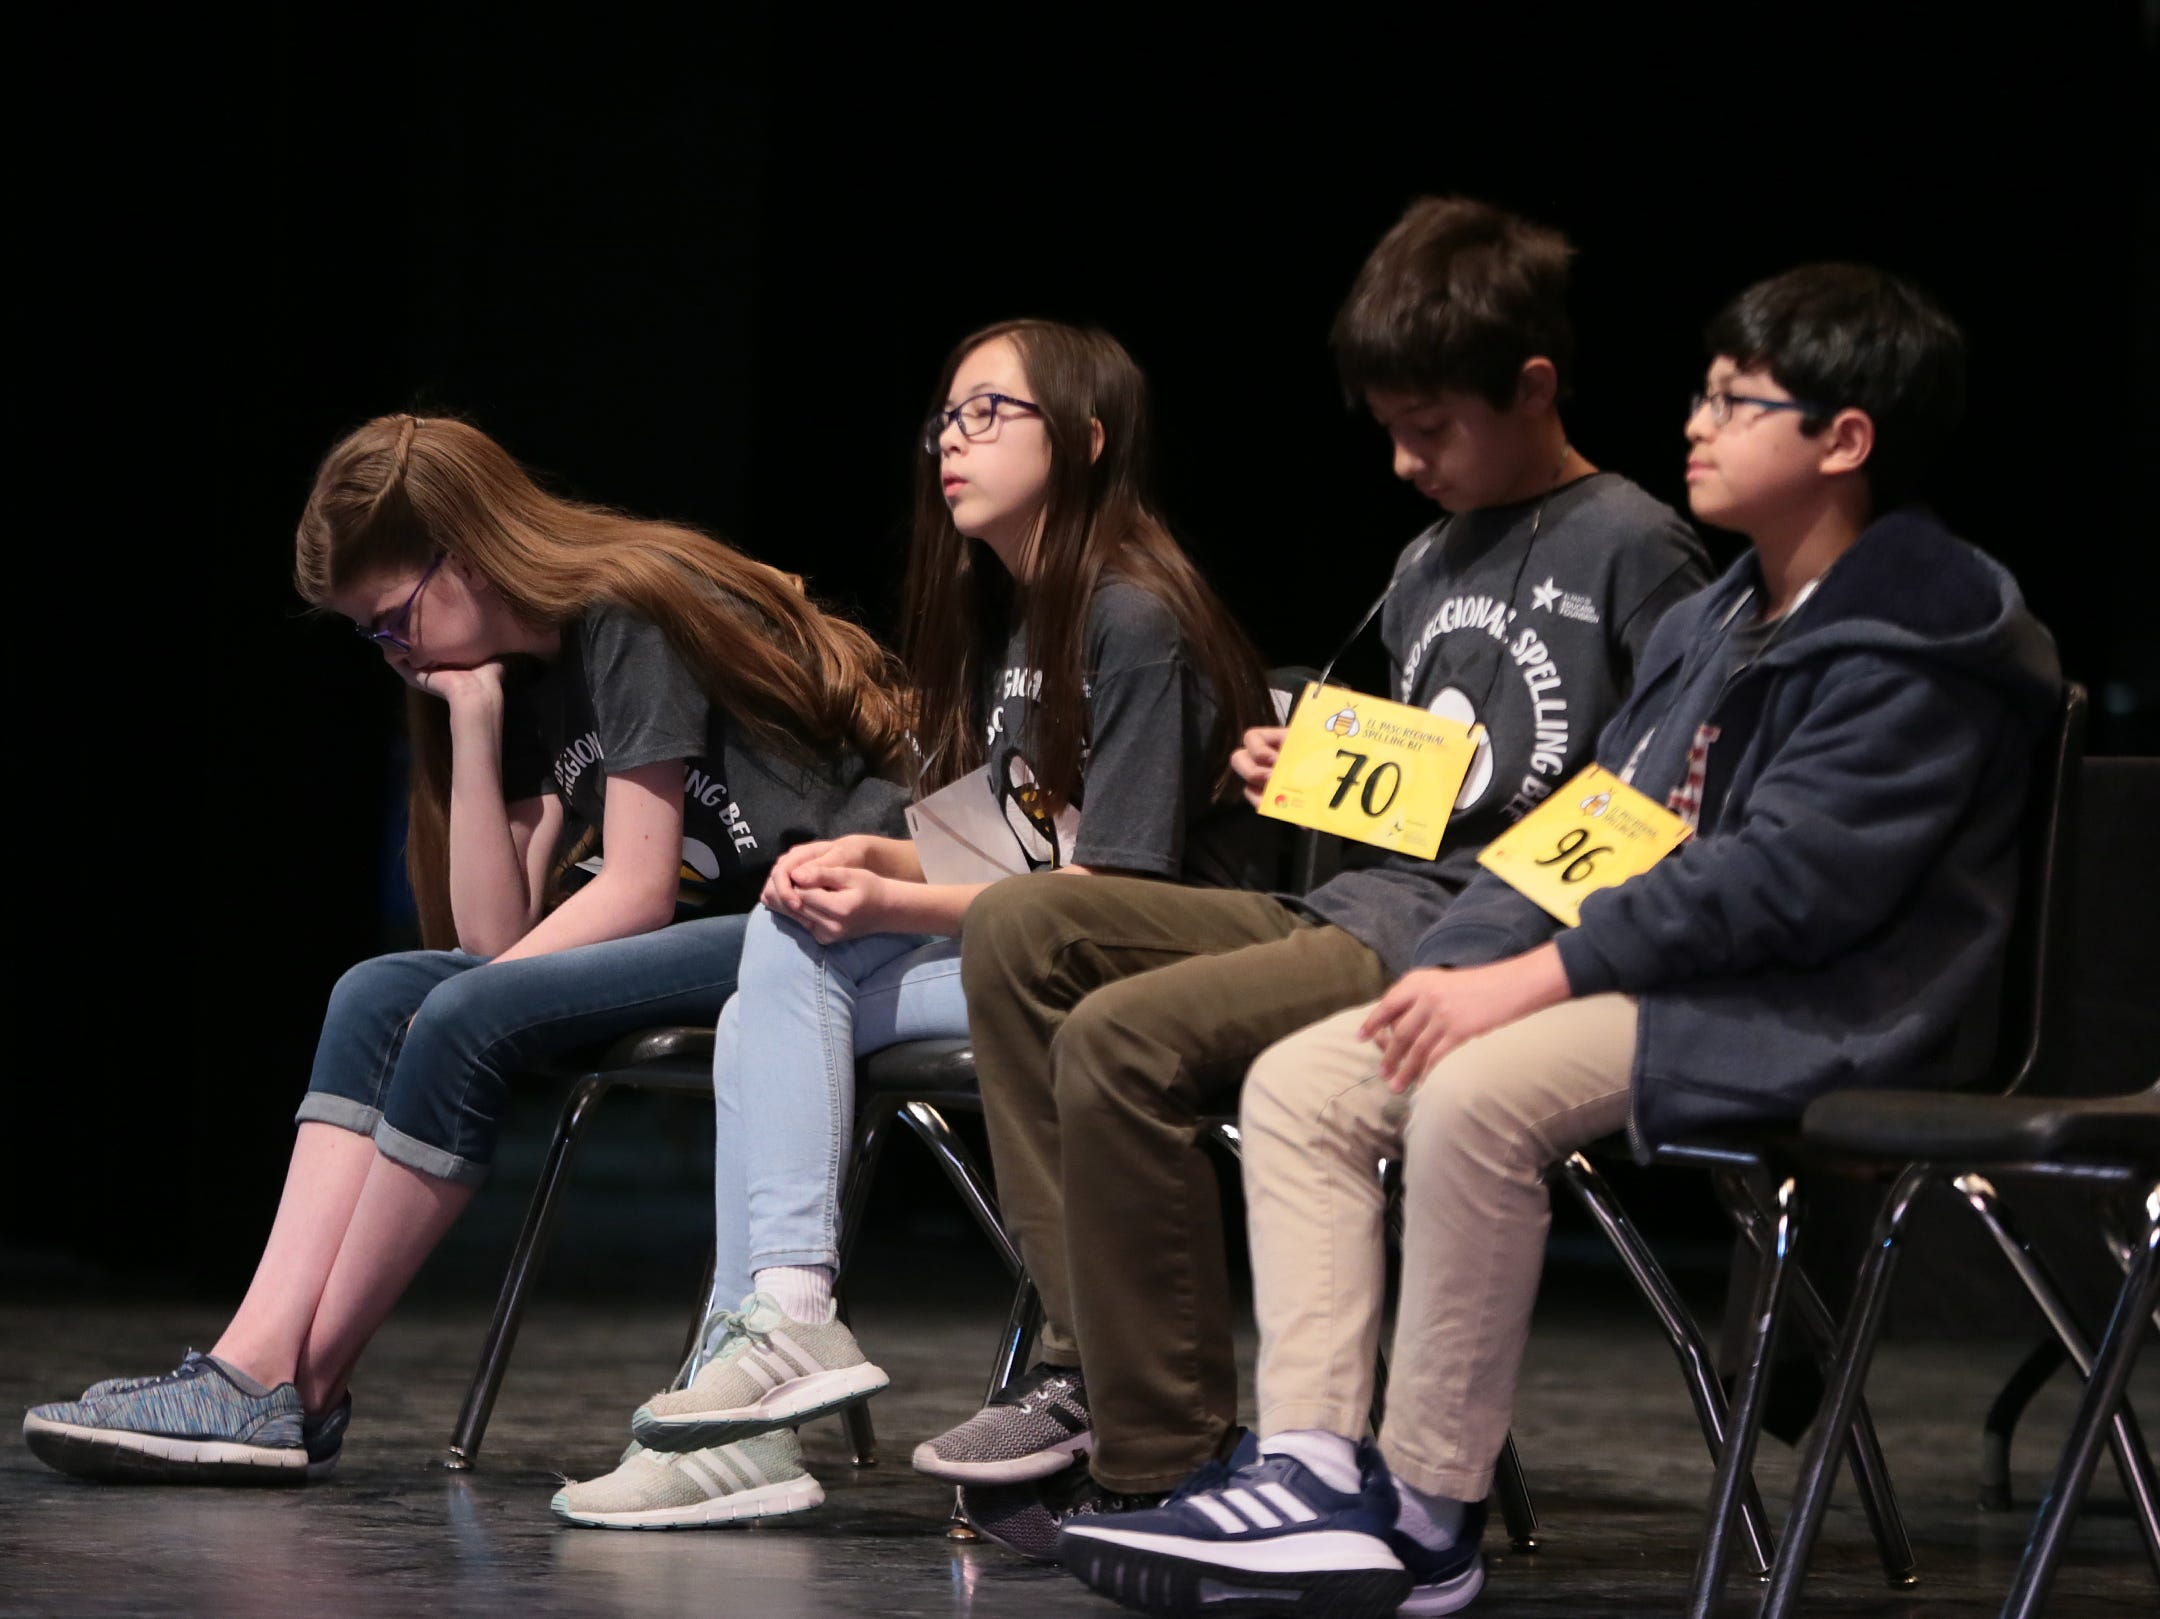 158 students from around the area competed Saturday in the 2019 El Paso Regional Spelling Bee at Bowie High School. Lincoln Middle School's Penelope Moore, 13, won the title.